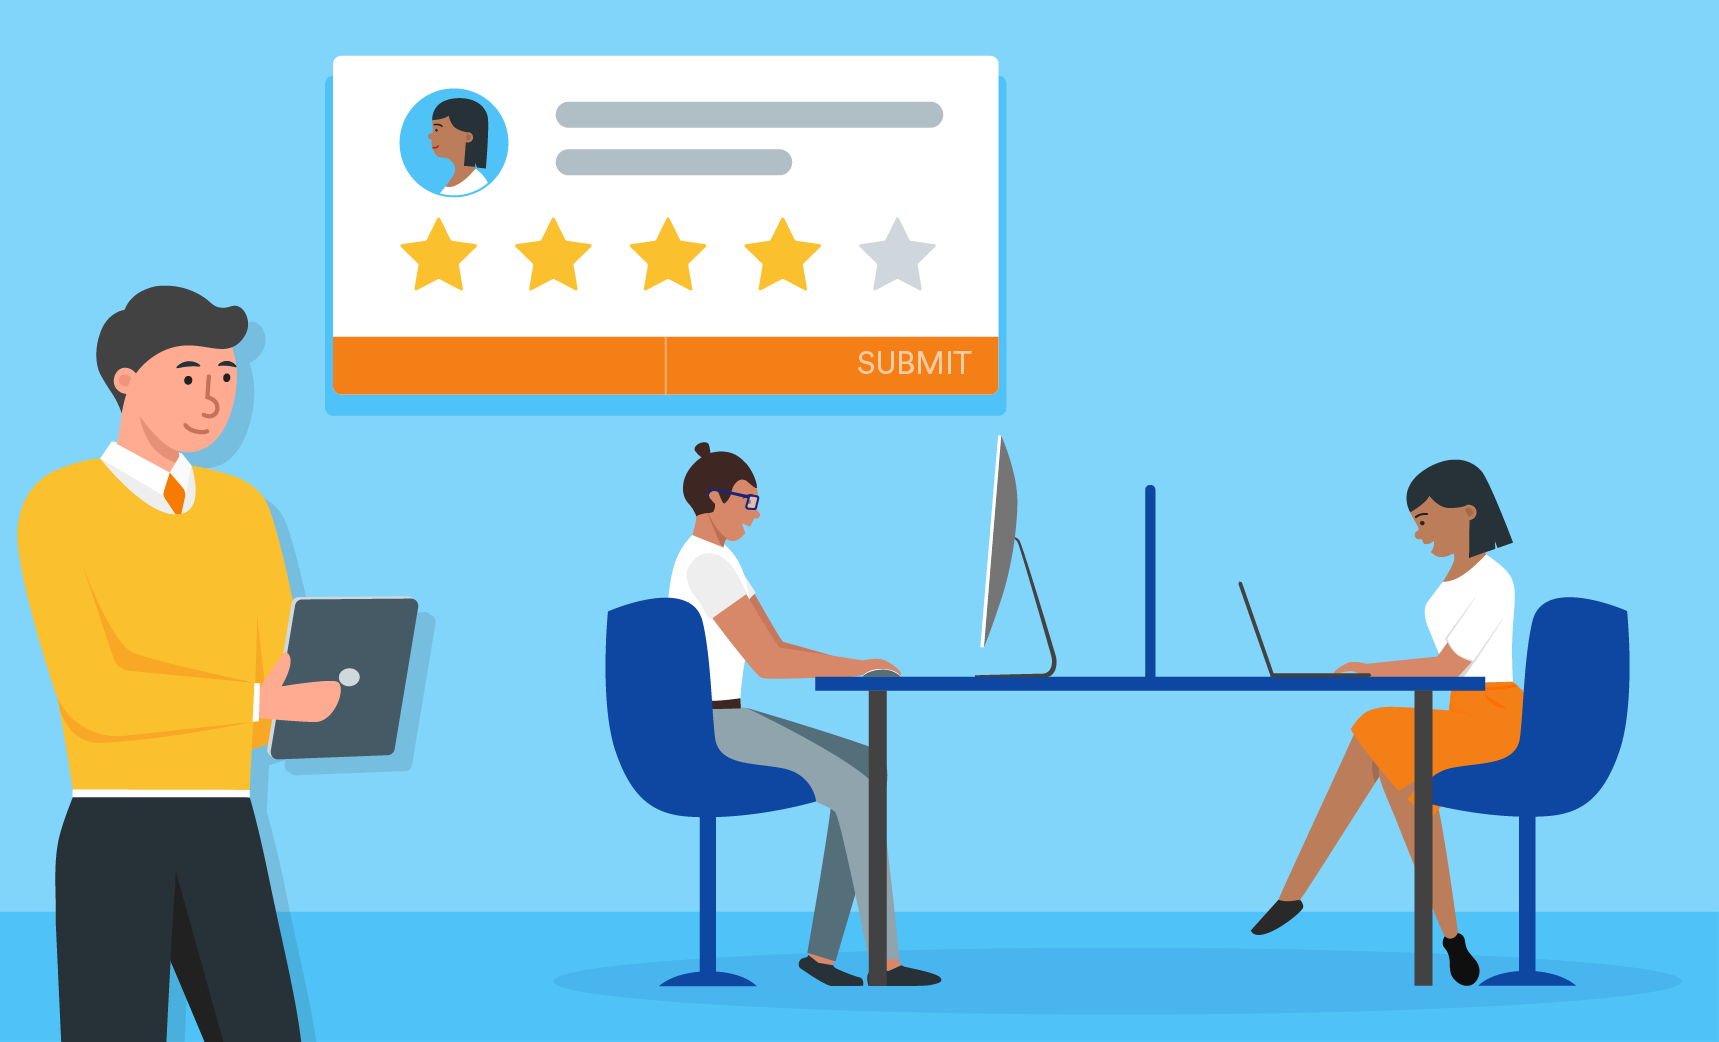 manager evaluate their employee with online form